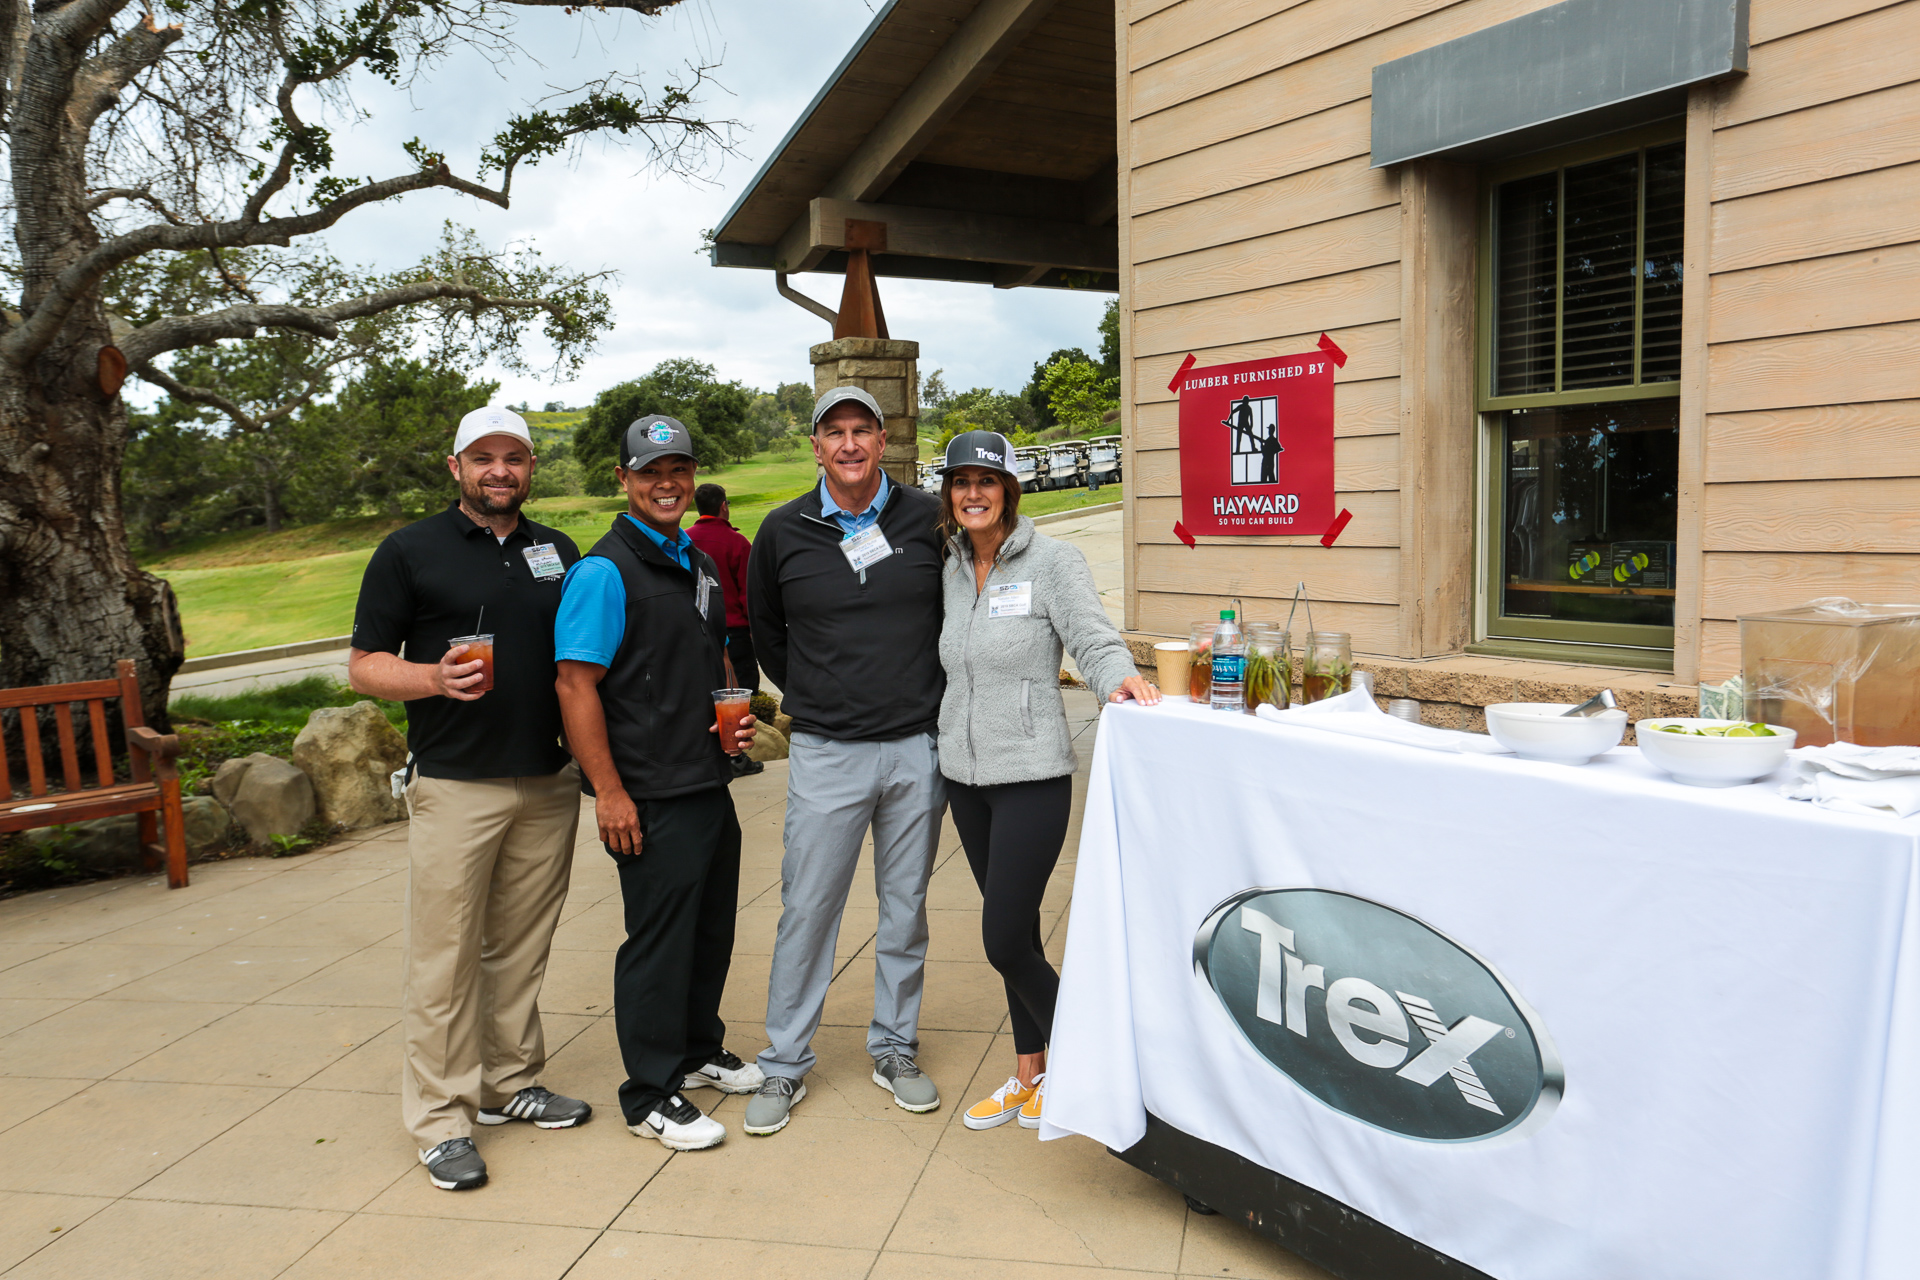 Thanks to TREX for sponsoring this delicious bloody mary bar.